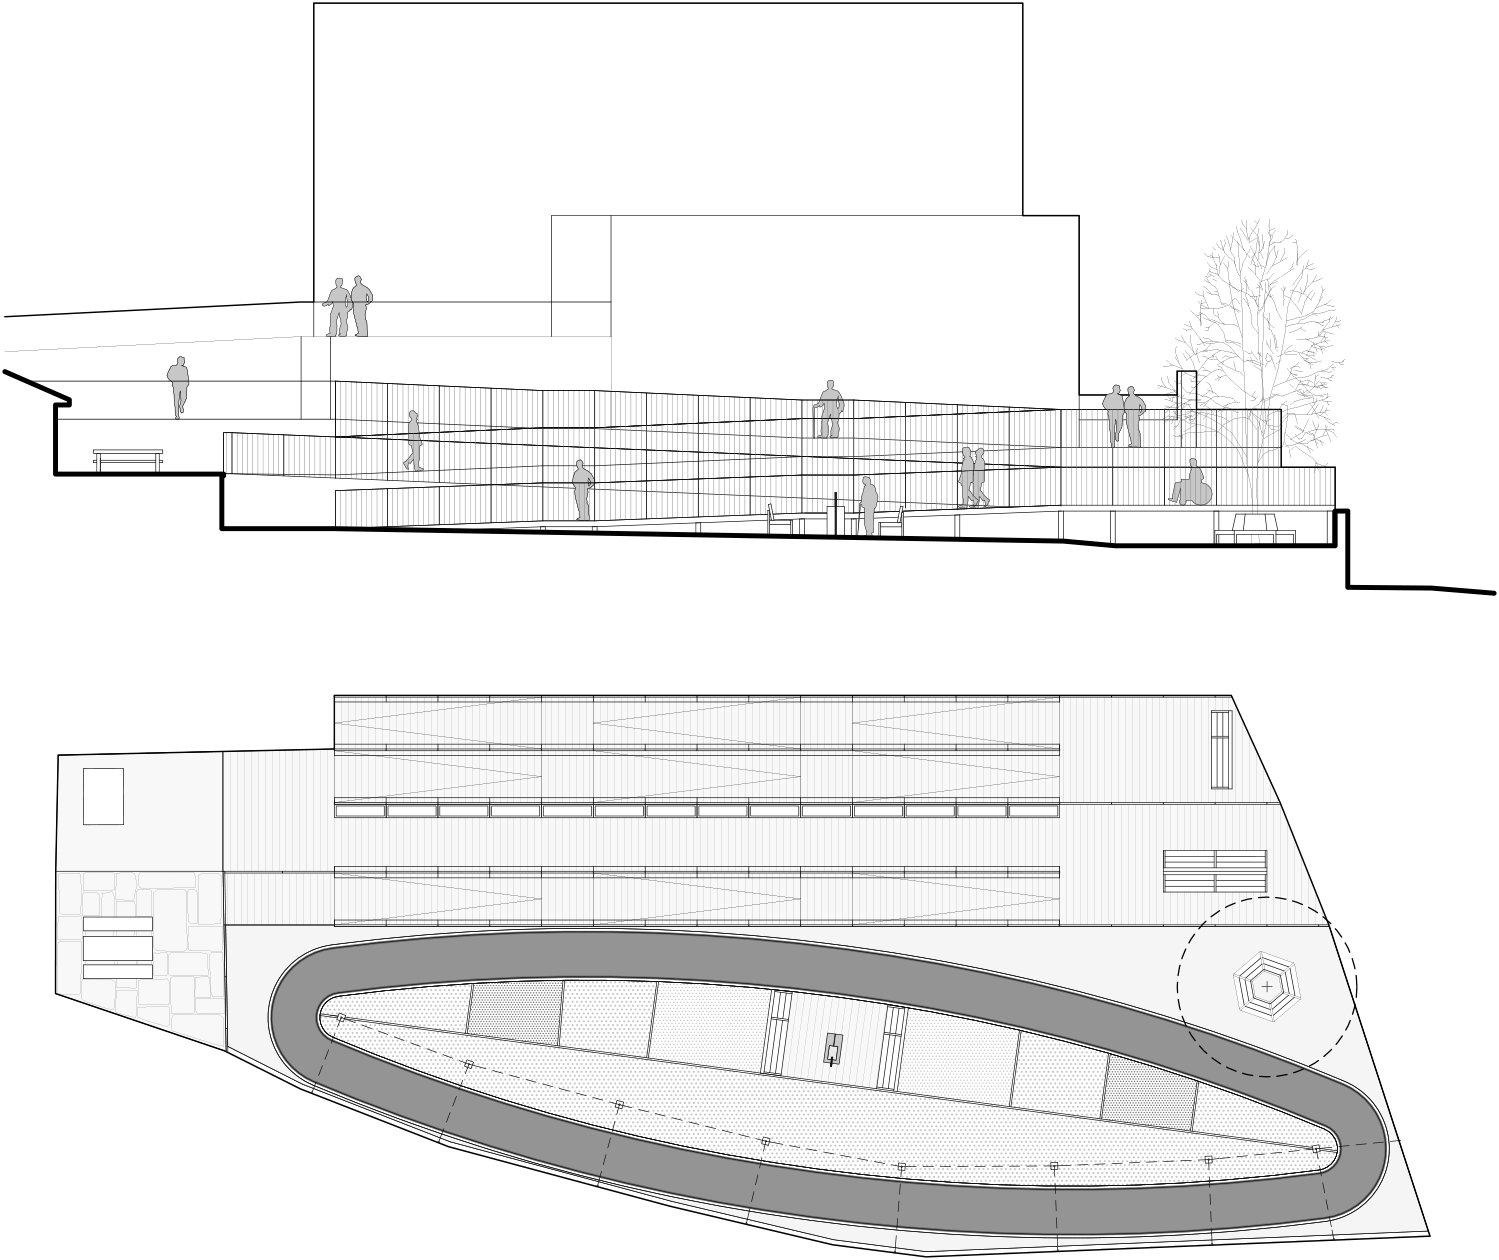 plan and section Enrico Sassi Architetto}